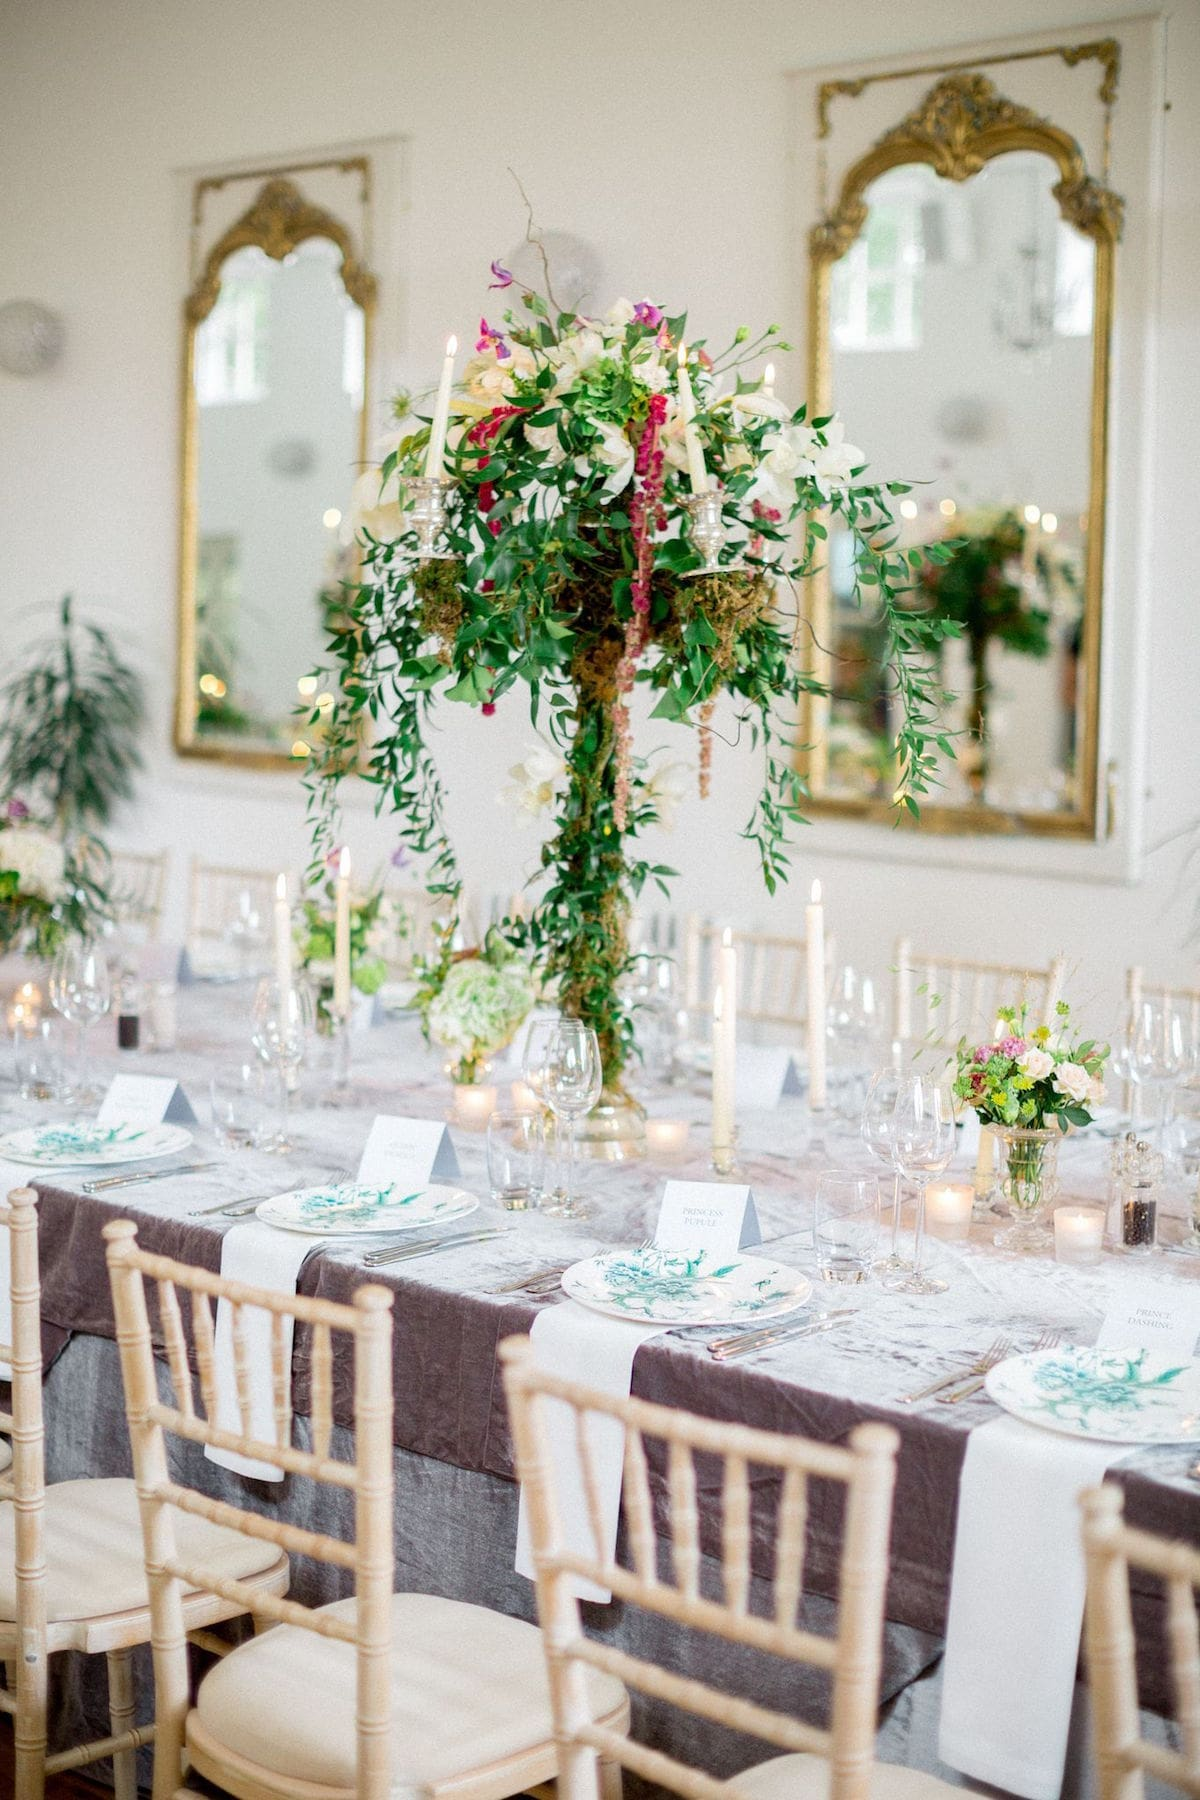 tall centrepiece with trailing greenery